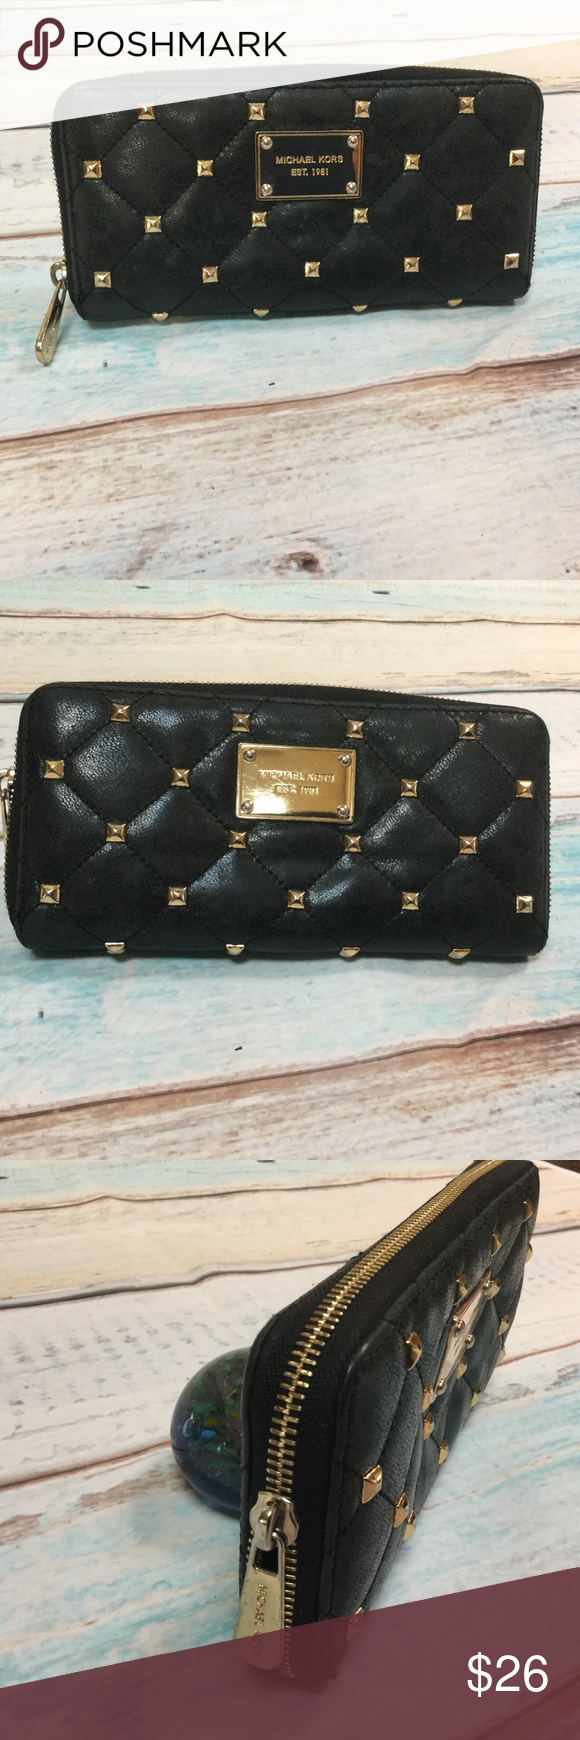 42d3ee775 ... australia michael kors studded wallet this mk wallet is prelove in good  conditions some discoloration not